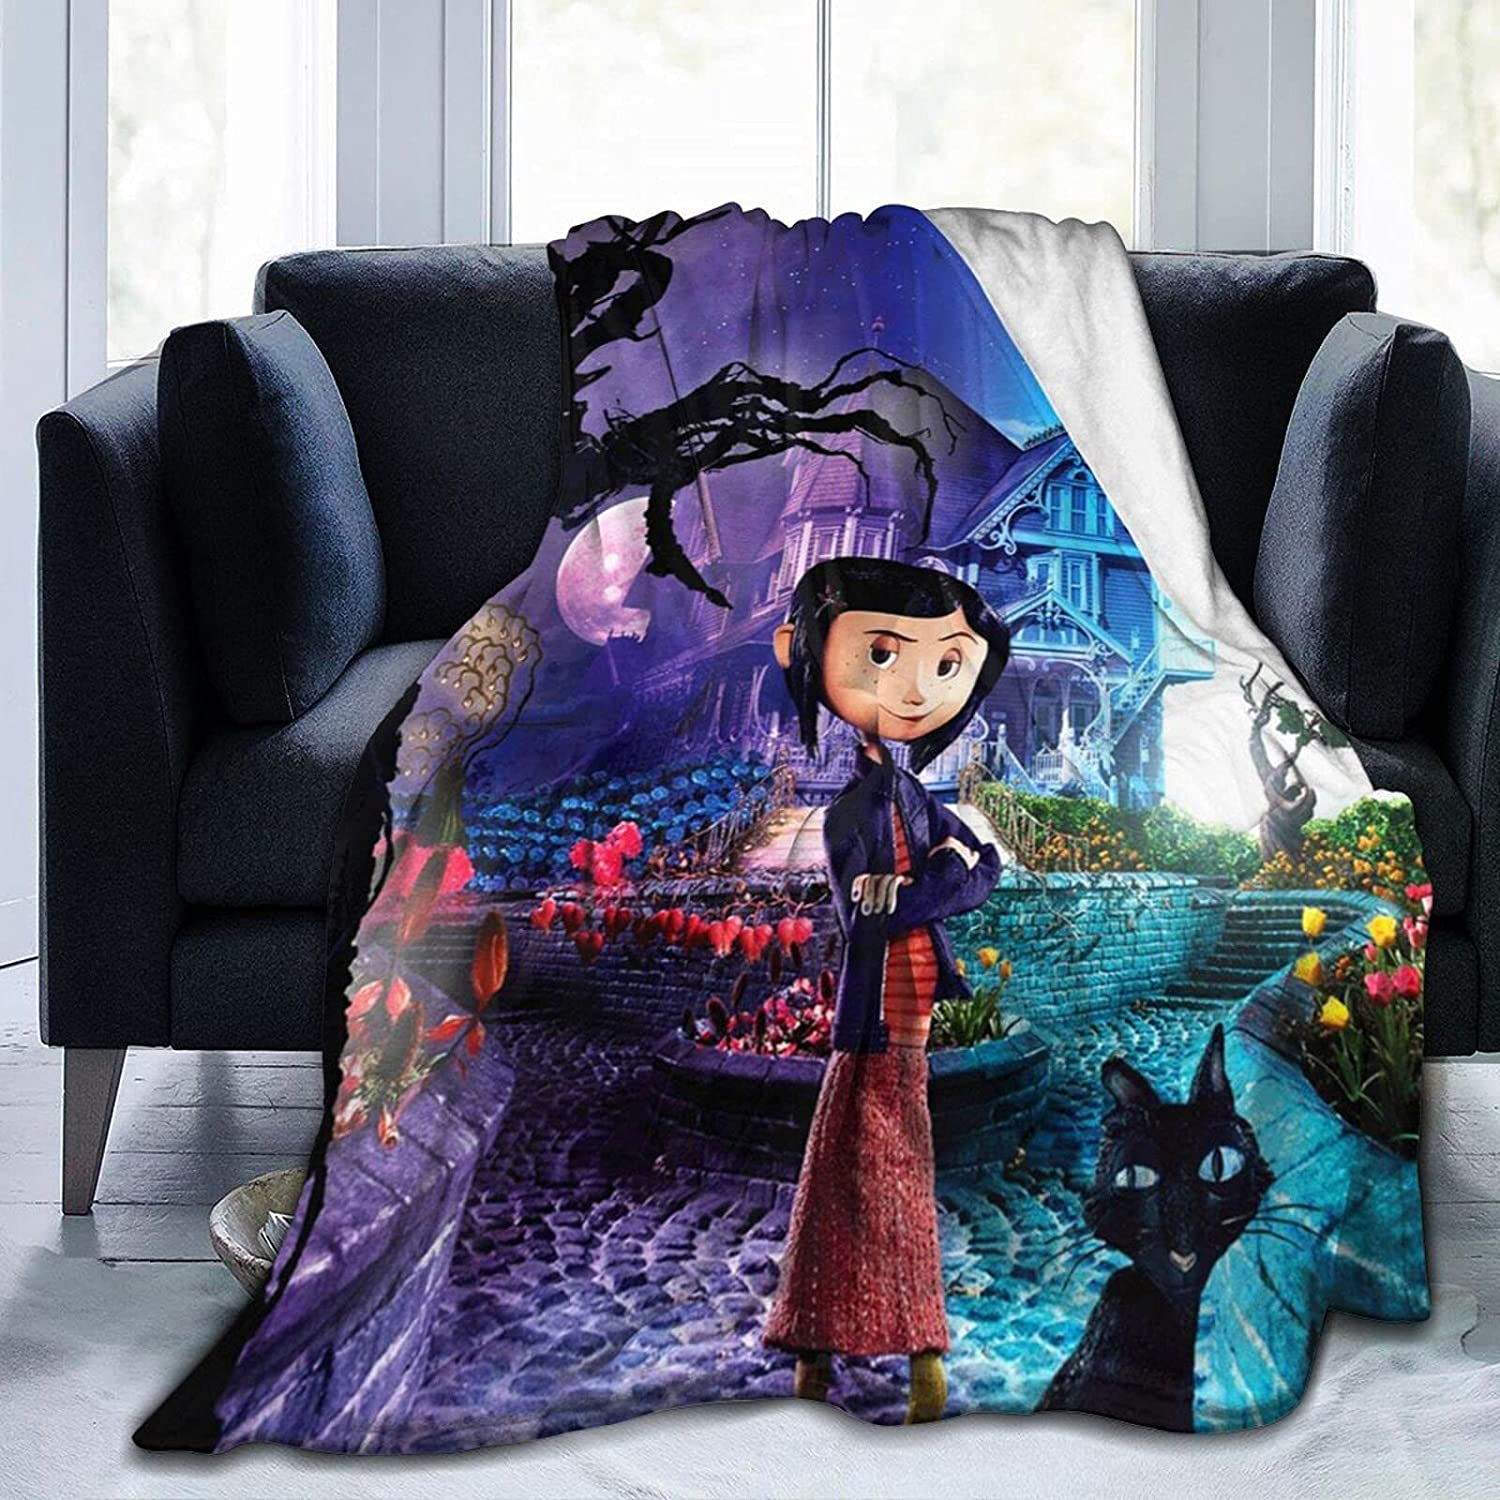 Coraline Blanket Limited Ranking TOP17 time trial price Flannel Fleece Luxury Ultra Blanke Soft